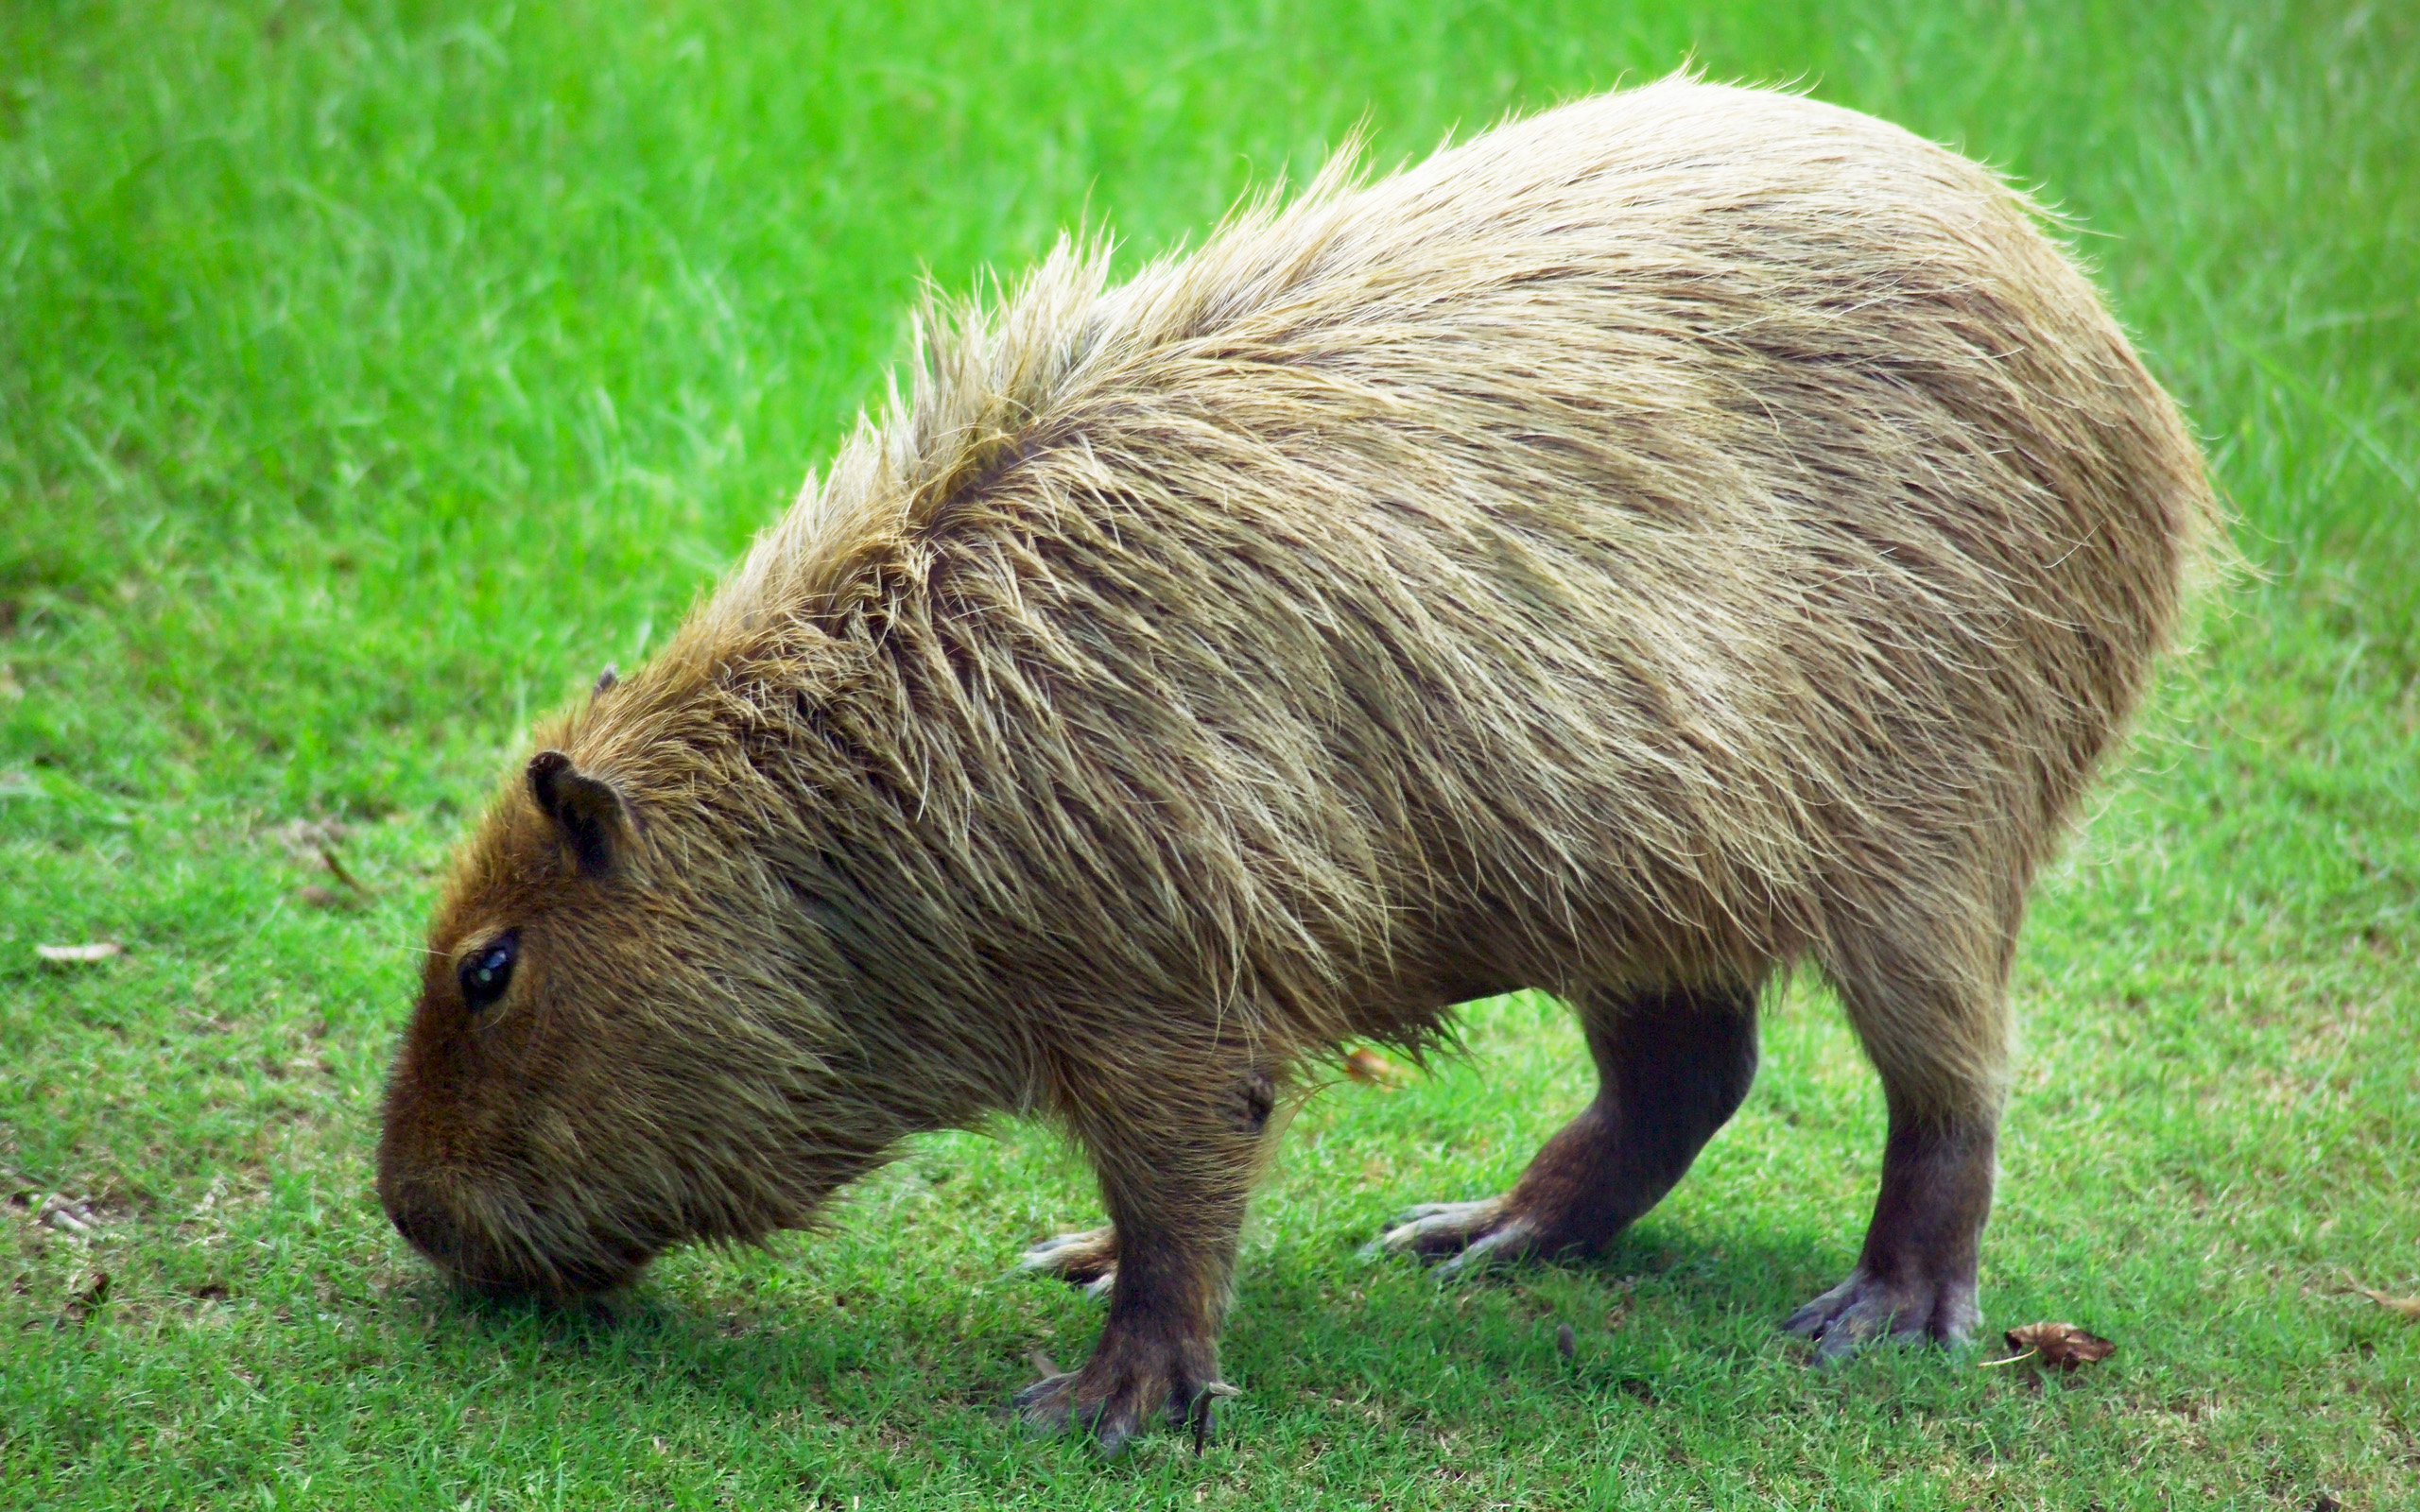 worldy#39;s largest rodent